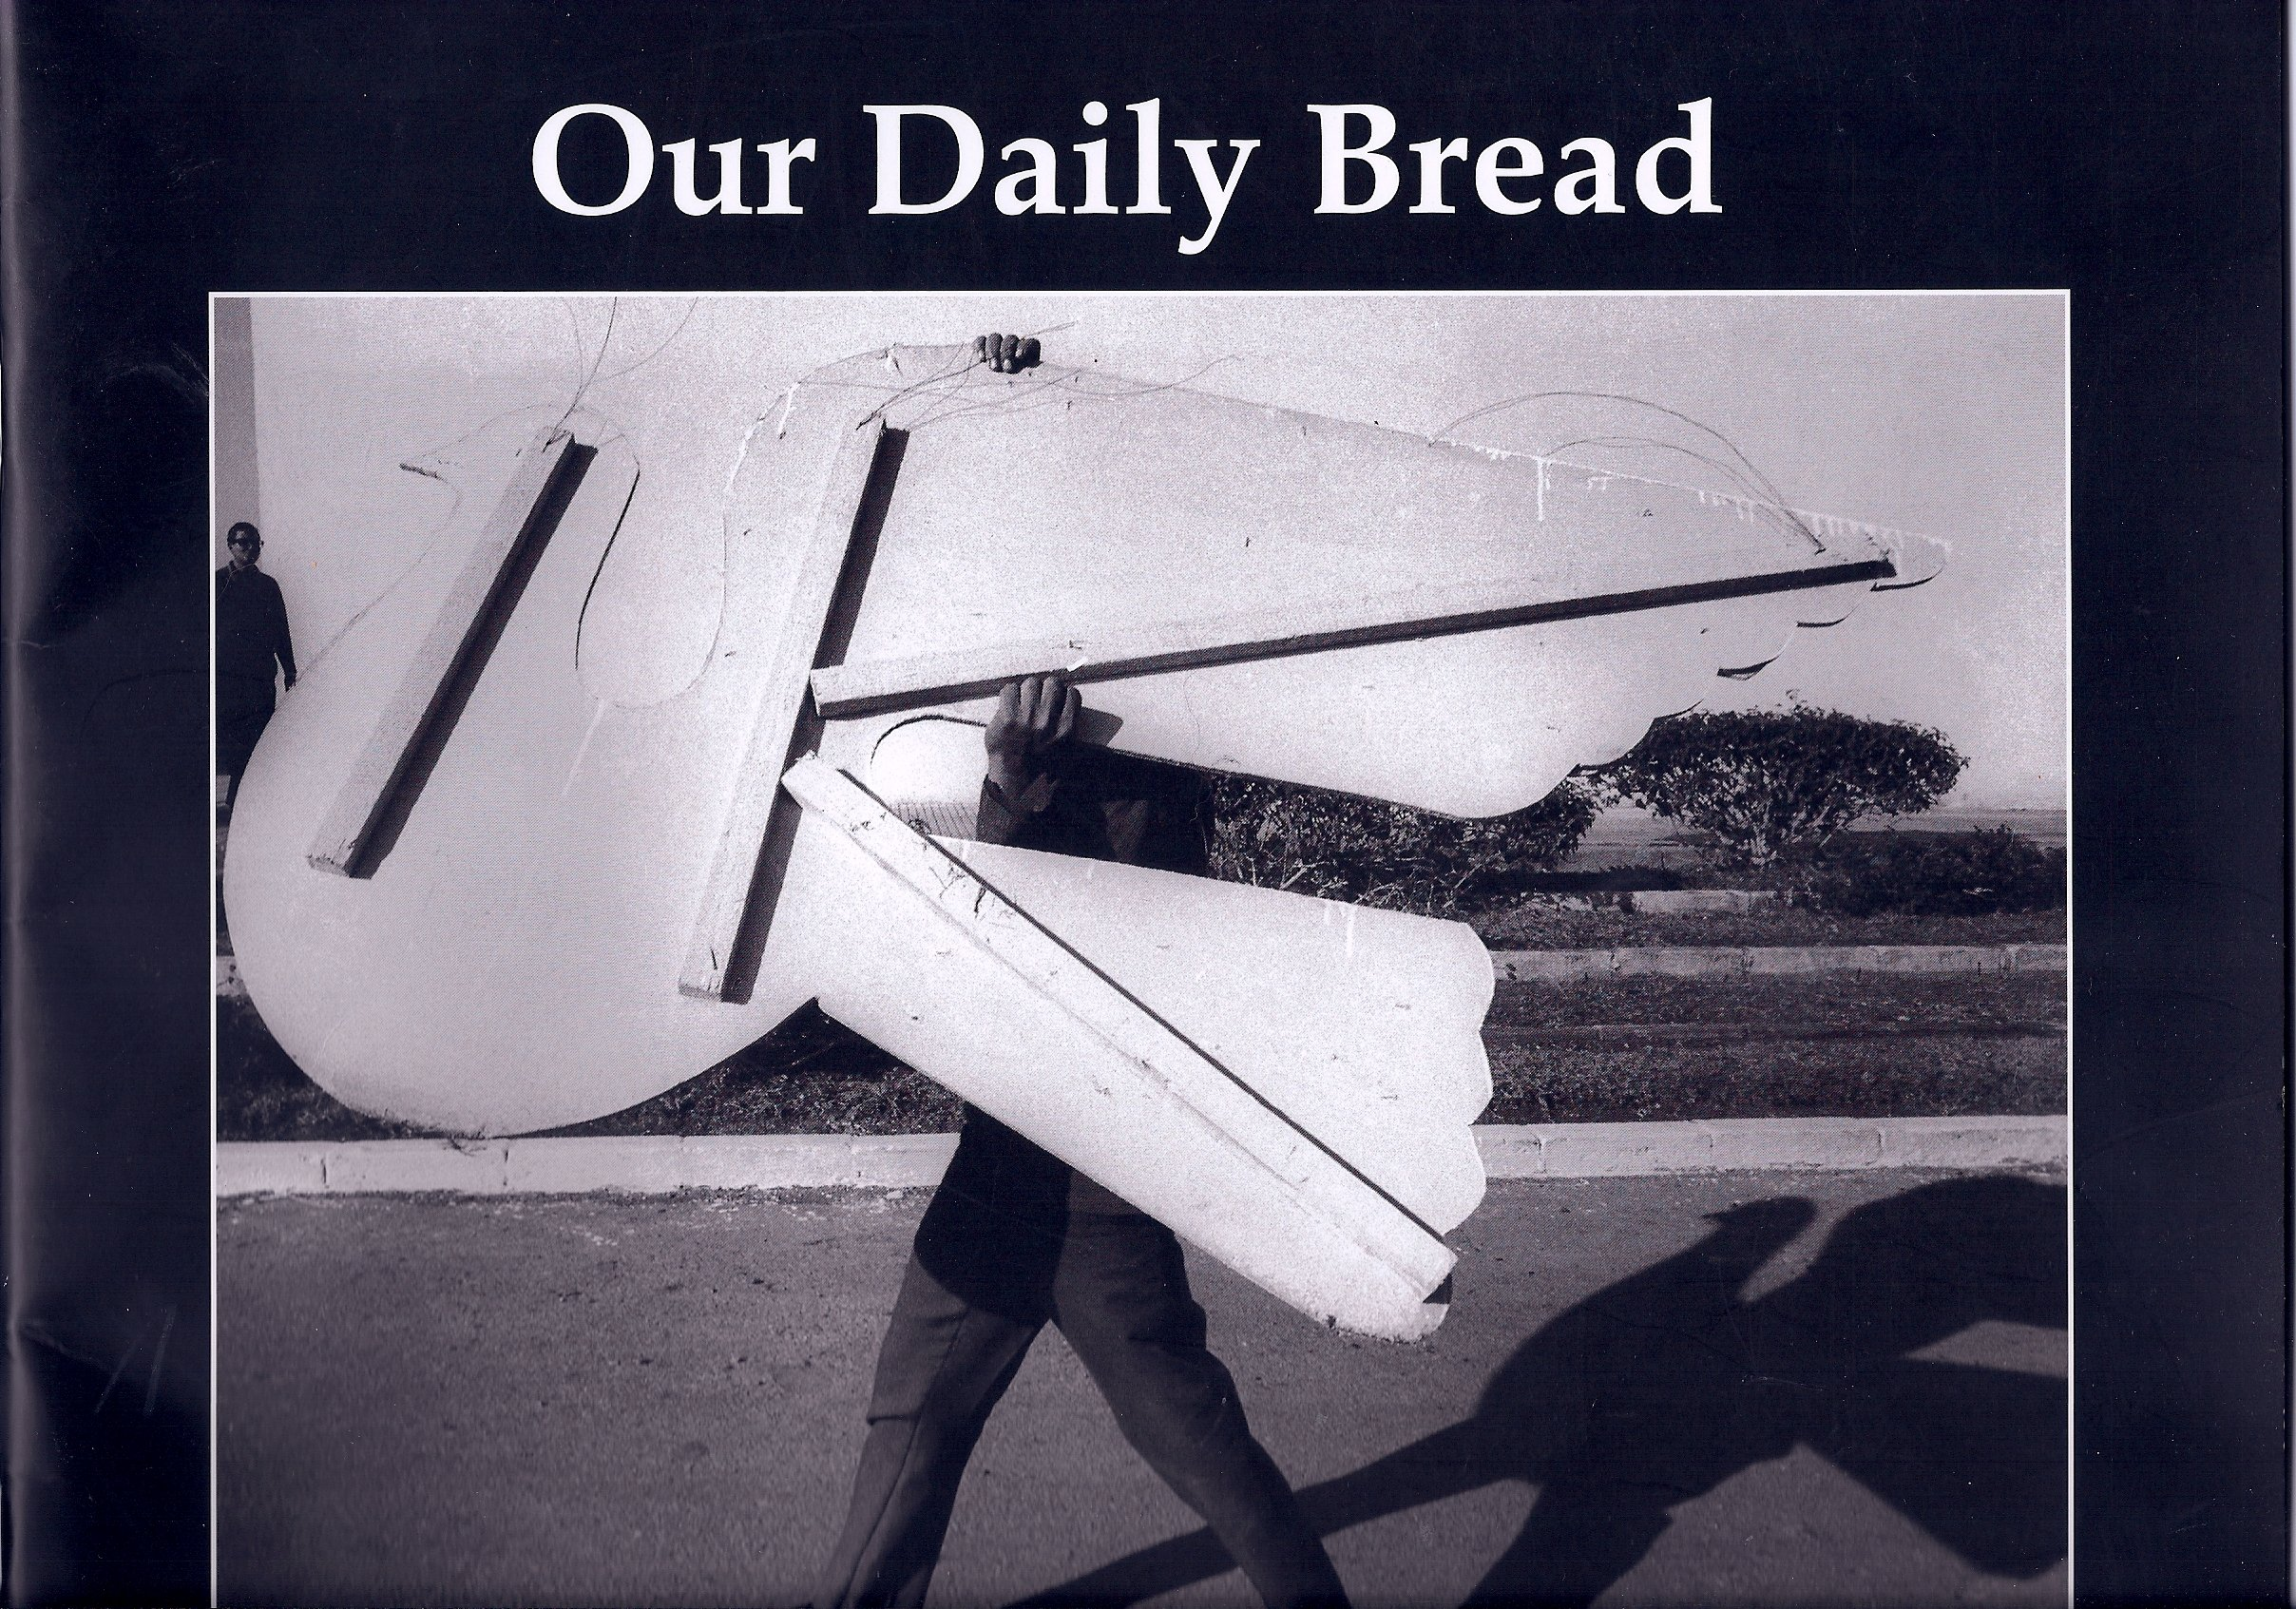 Our Daily Bread: Photographs From Israel by Micha Bar-Am pdf epub